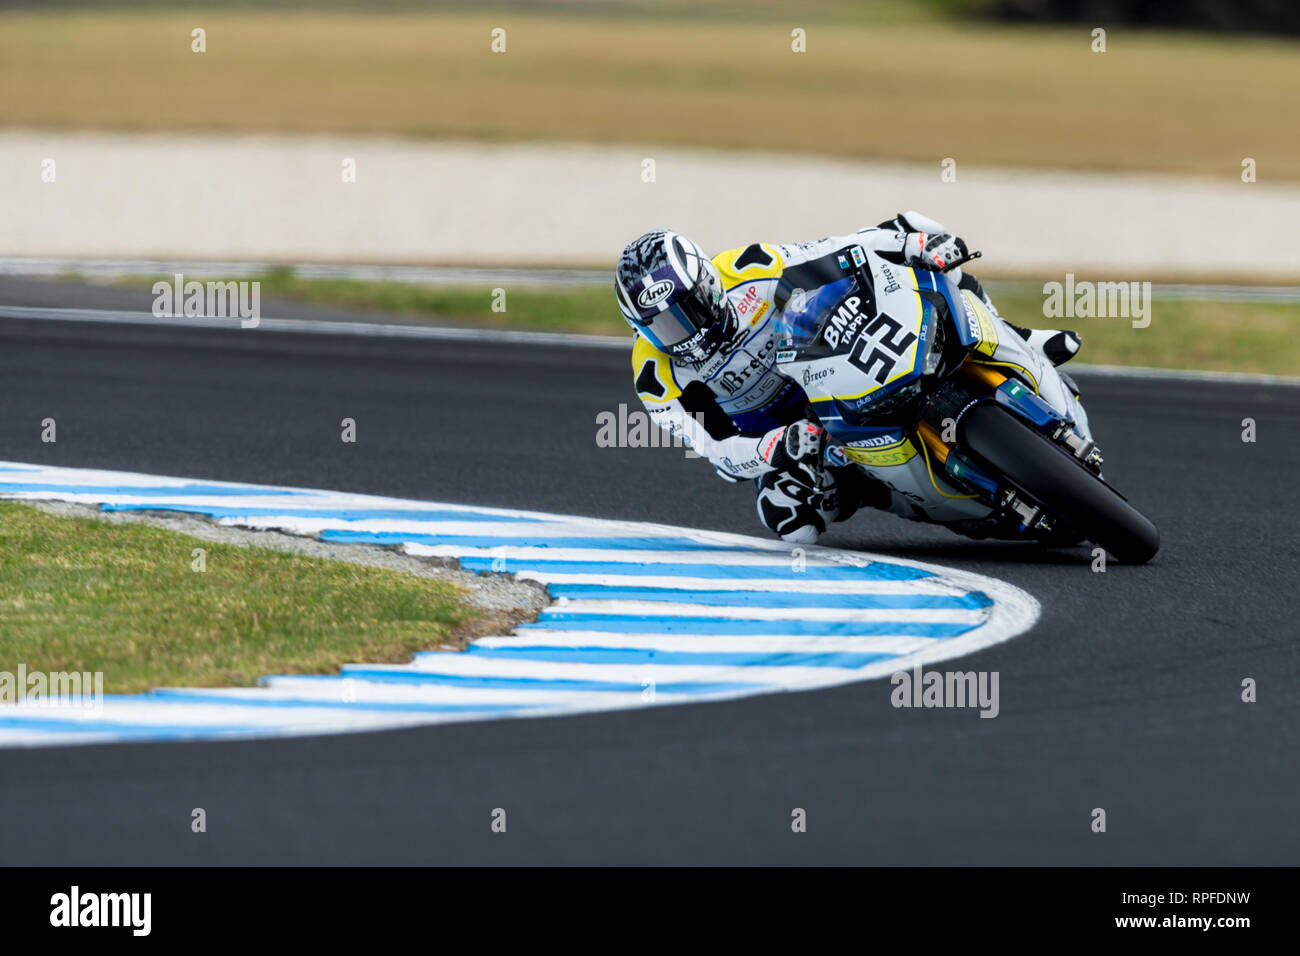 Phillip Island, Victoria, Australia. 22nd Feb, 2019. World Superbikes Championship, Friday free practice; The number 52 Althea Mie Racing Team Honda ridden by Alessandro Delbianco in Free Practice 1 Credit: Action Plus Sports/Alamy Live News Stock Photo